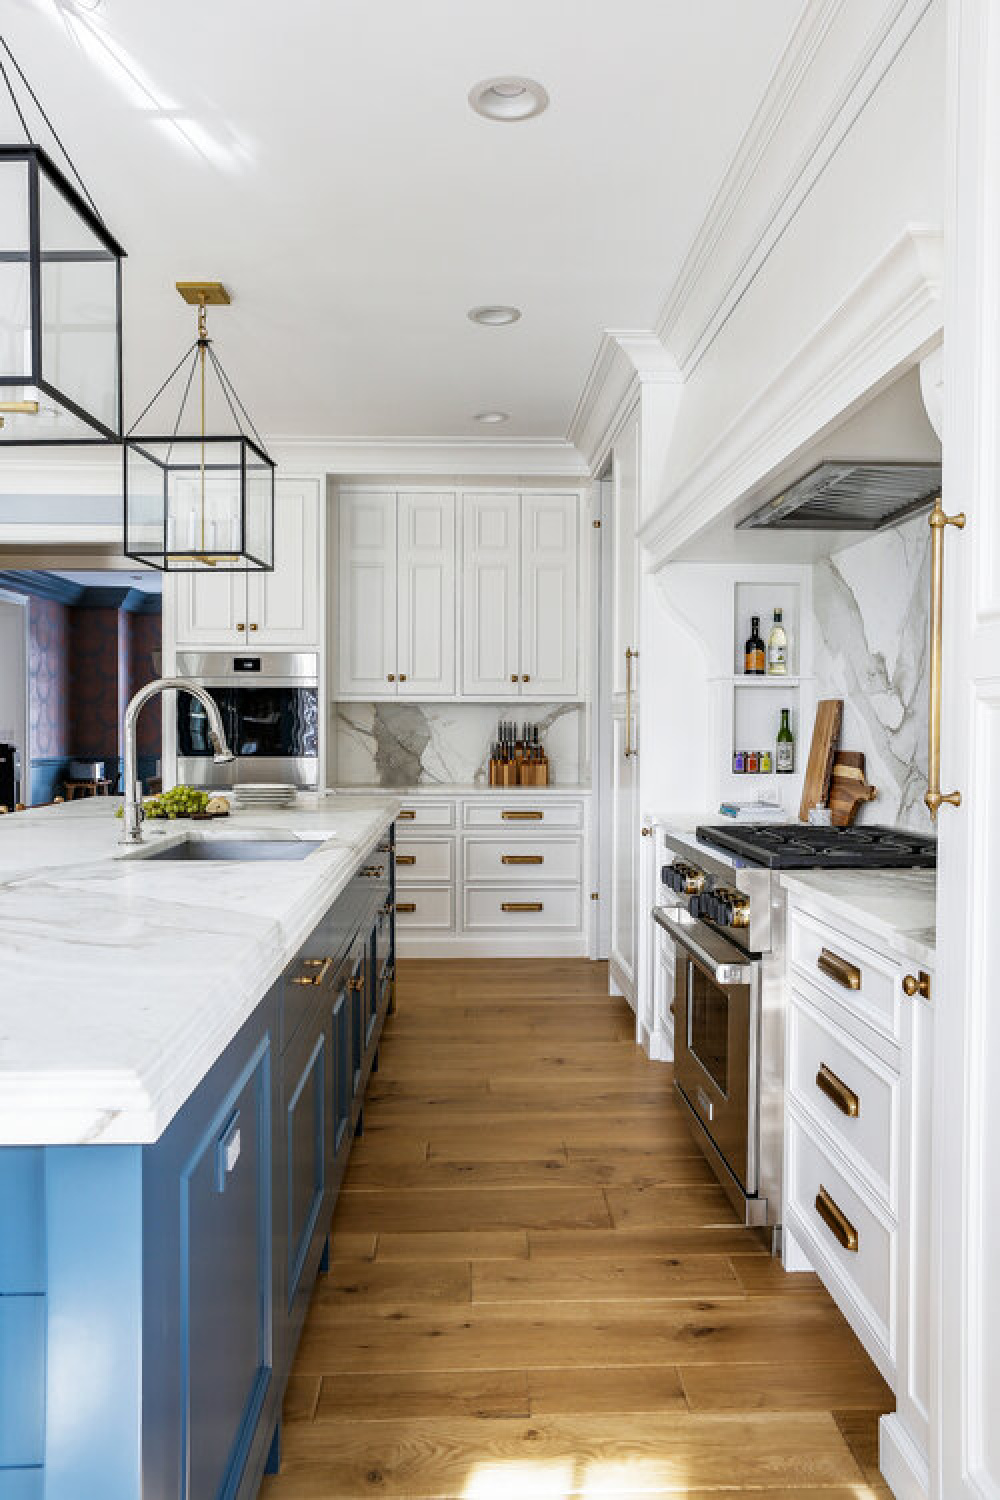 Classic blue kitchen design with traditional architecture, custom millwork, and sophisticated design - Edward Deegan Architects. #bluekitchens #traditionalkithens #classicbluekitchen